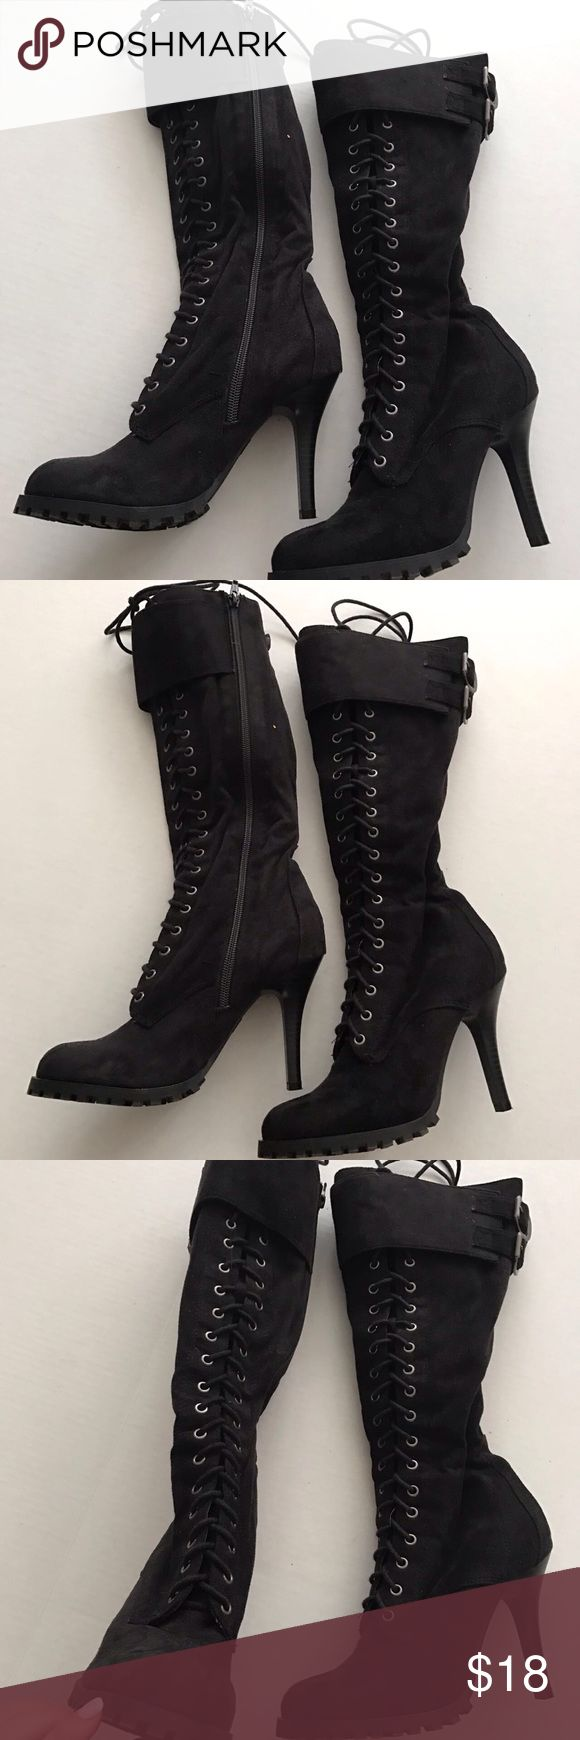 Lace up Boots Hits below the knee. Great condition. Zipper on the side. Uk style french connection French Connection Shoes Lace Up Boots